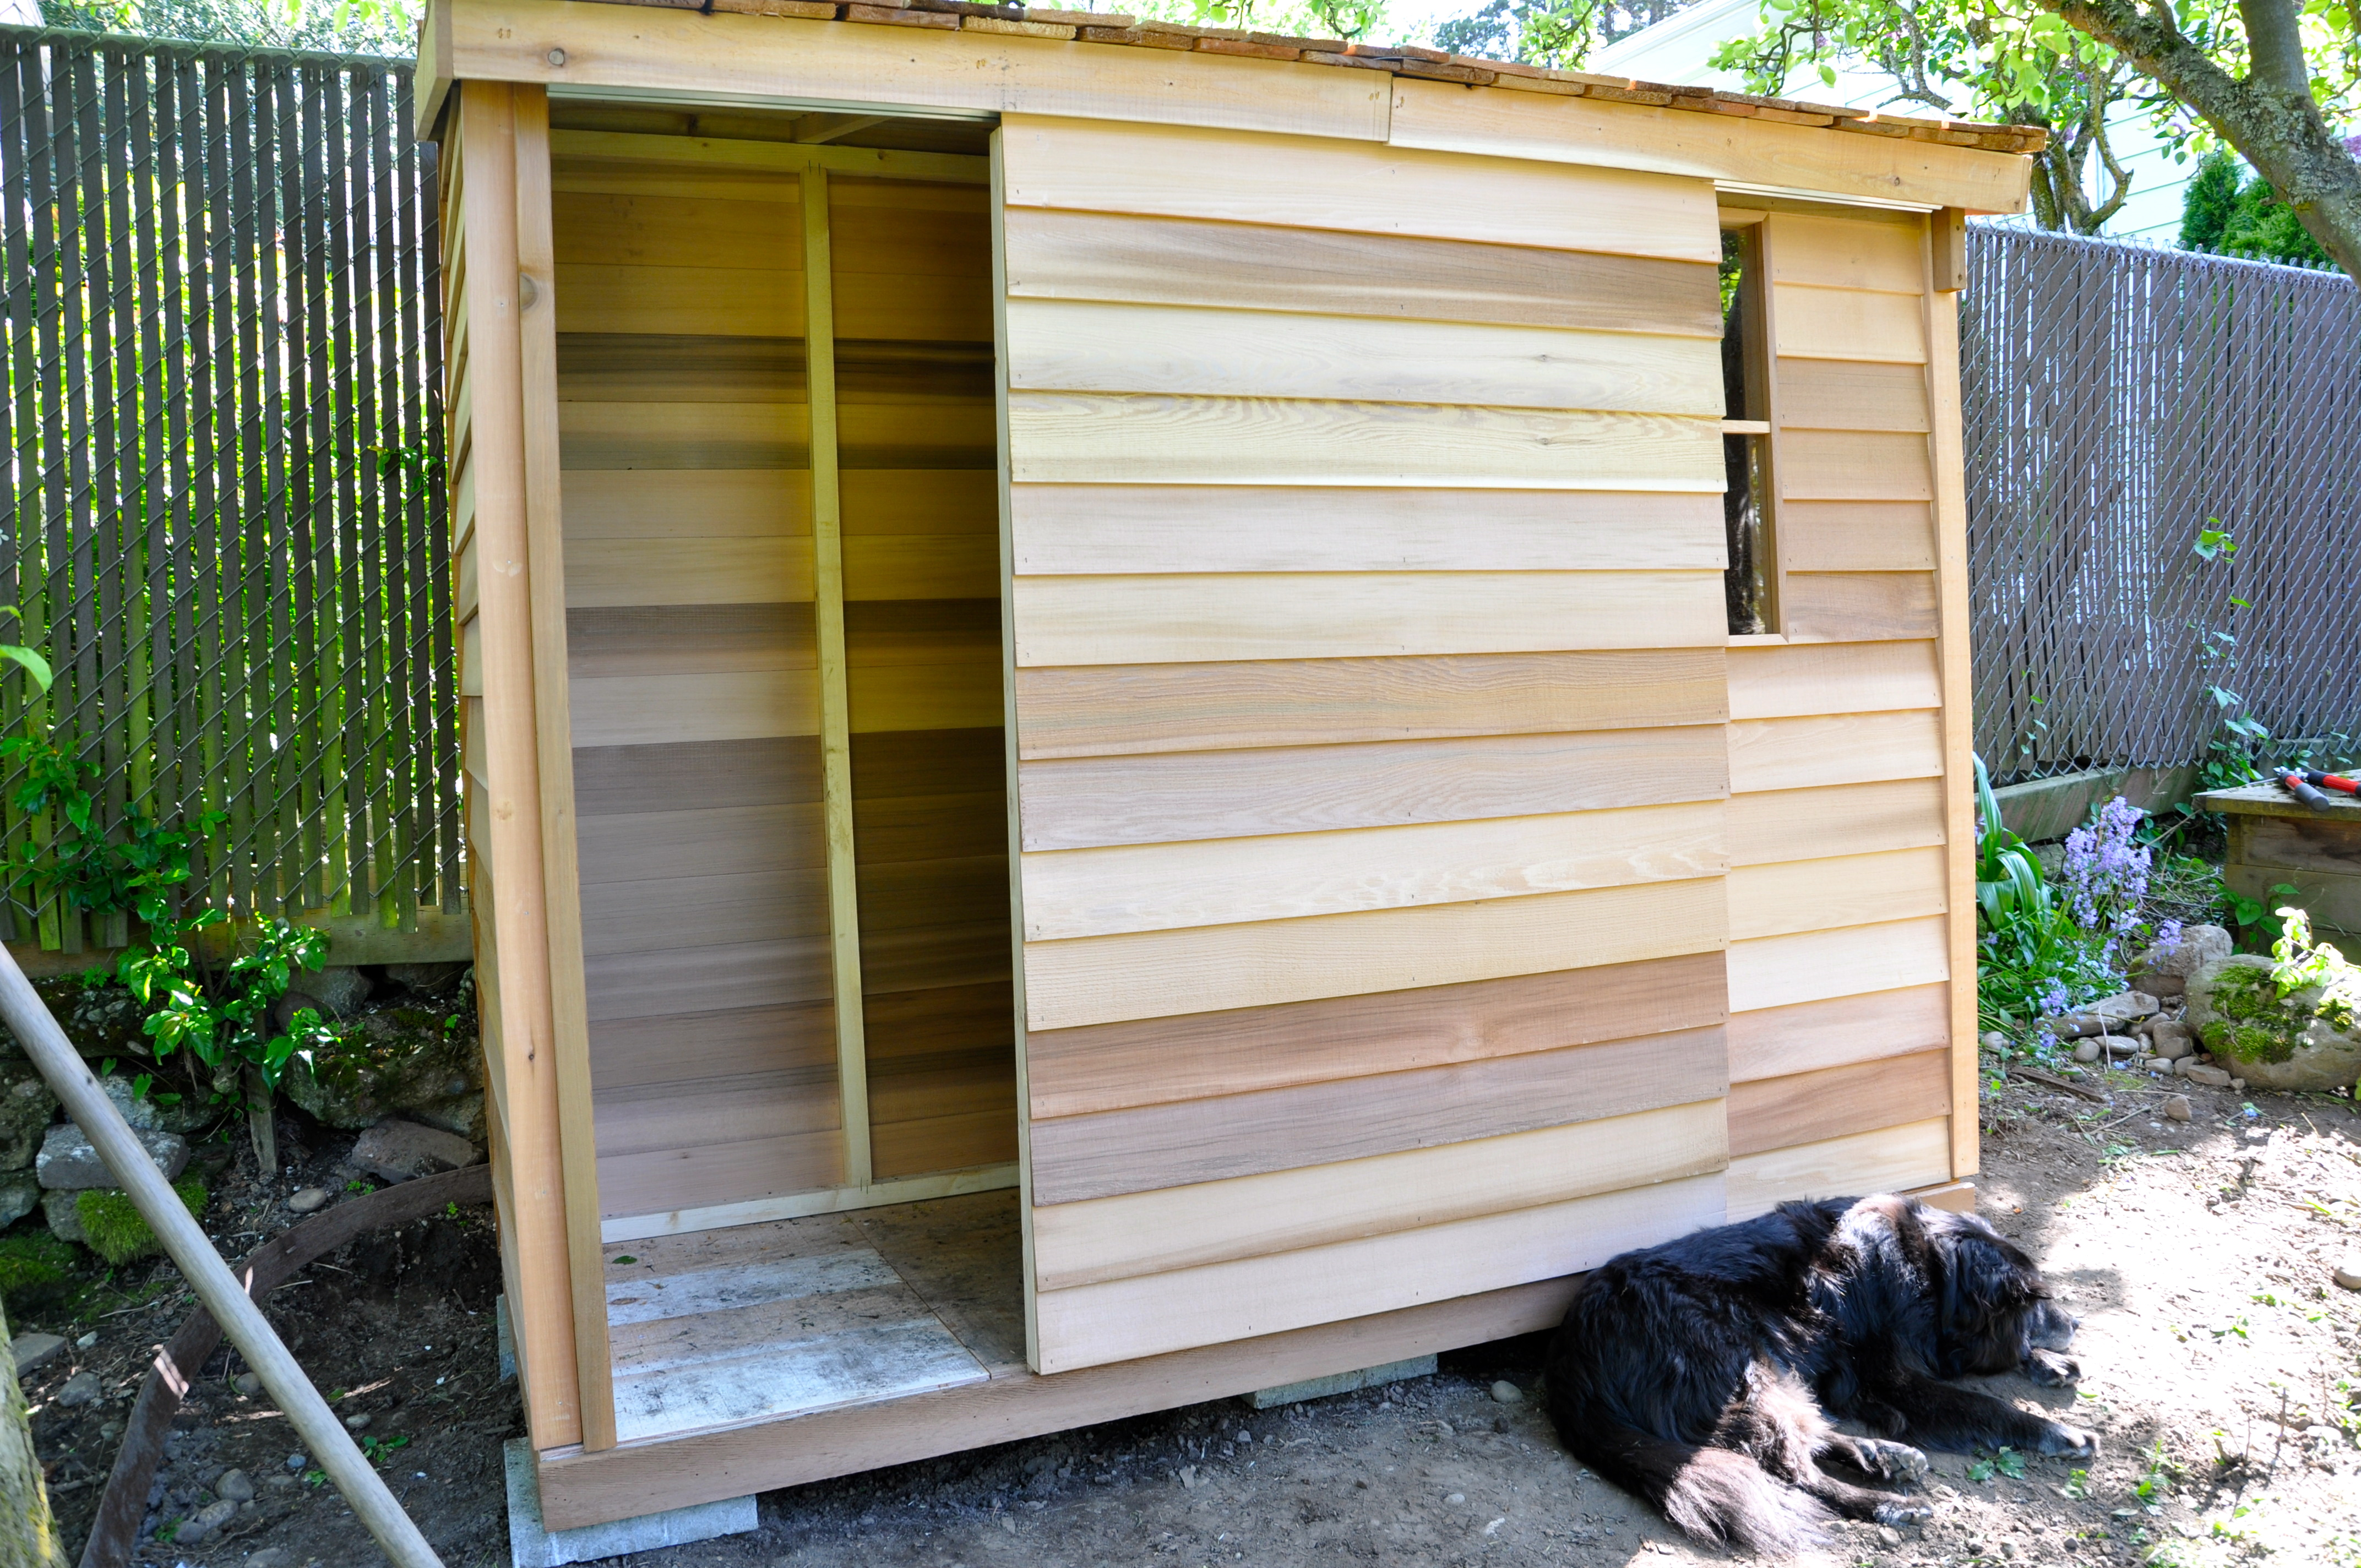 A traditional shed shape it is made from slats of wood that allow light and ventilation to flow through its walls. As storage and compact work are often ... & Garden shed sliding doors